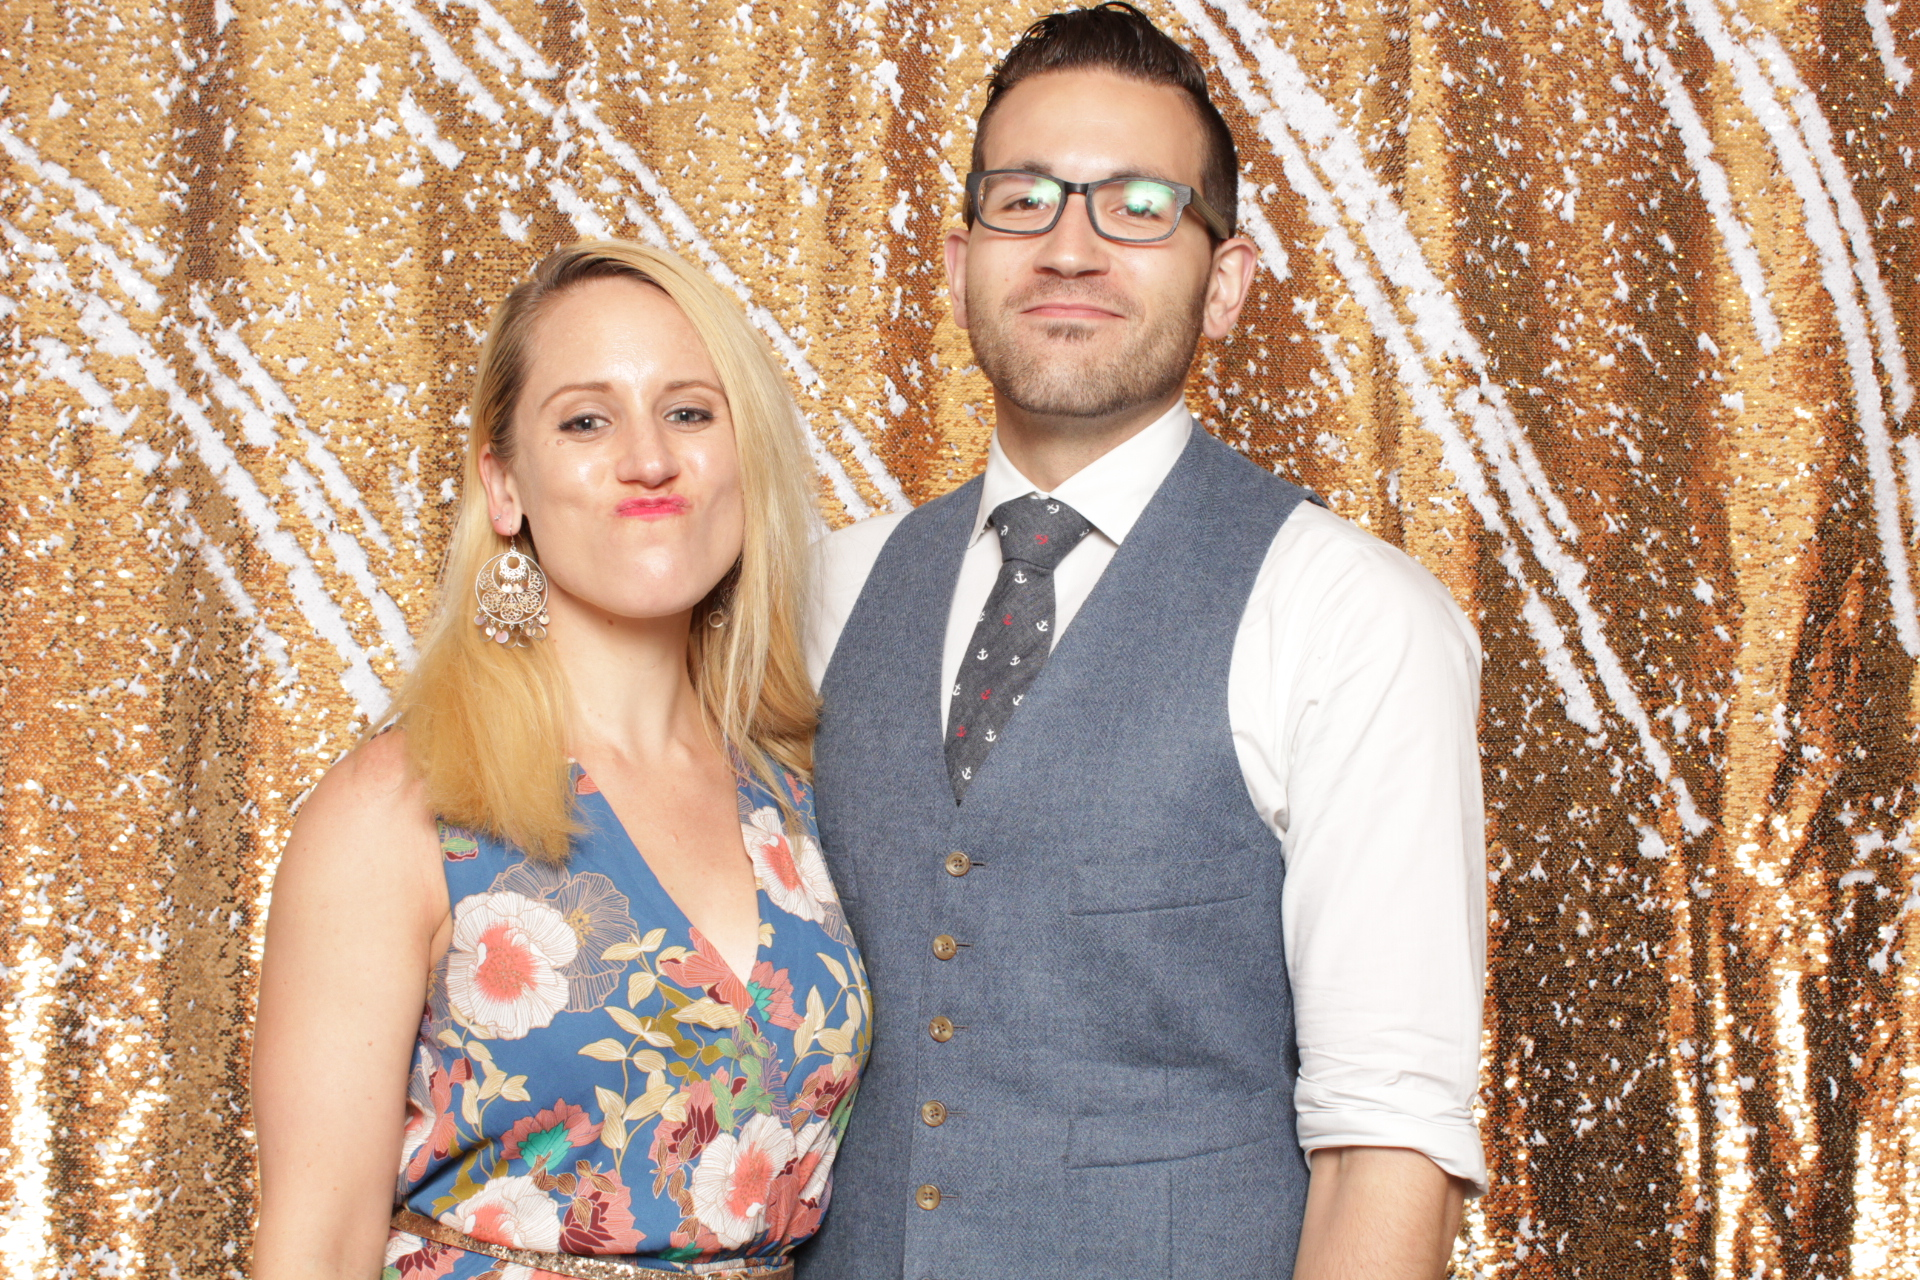 photo booth rental wedding philadelphia